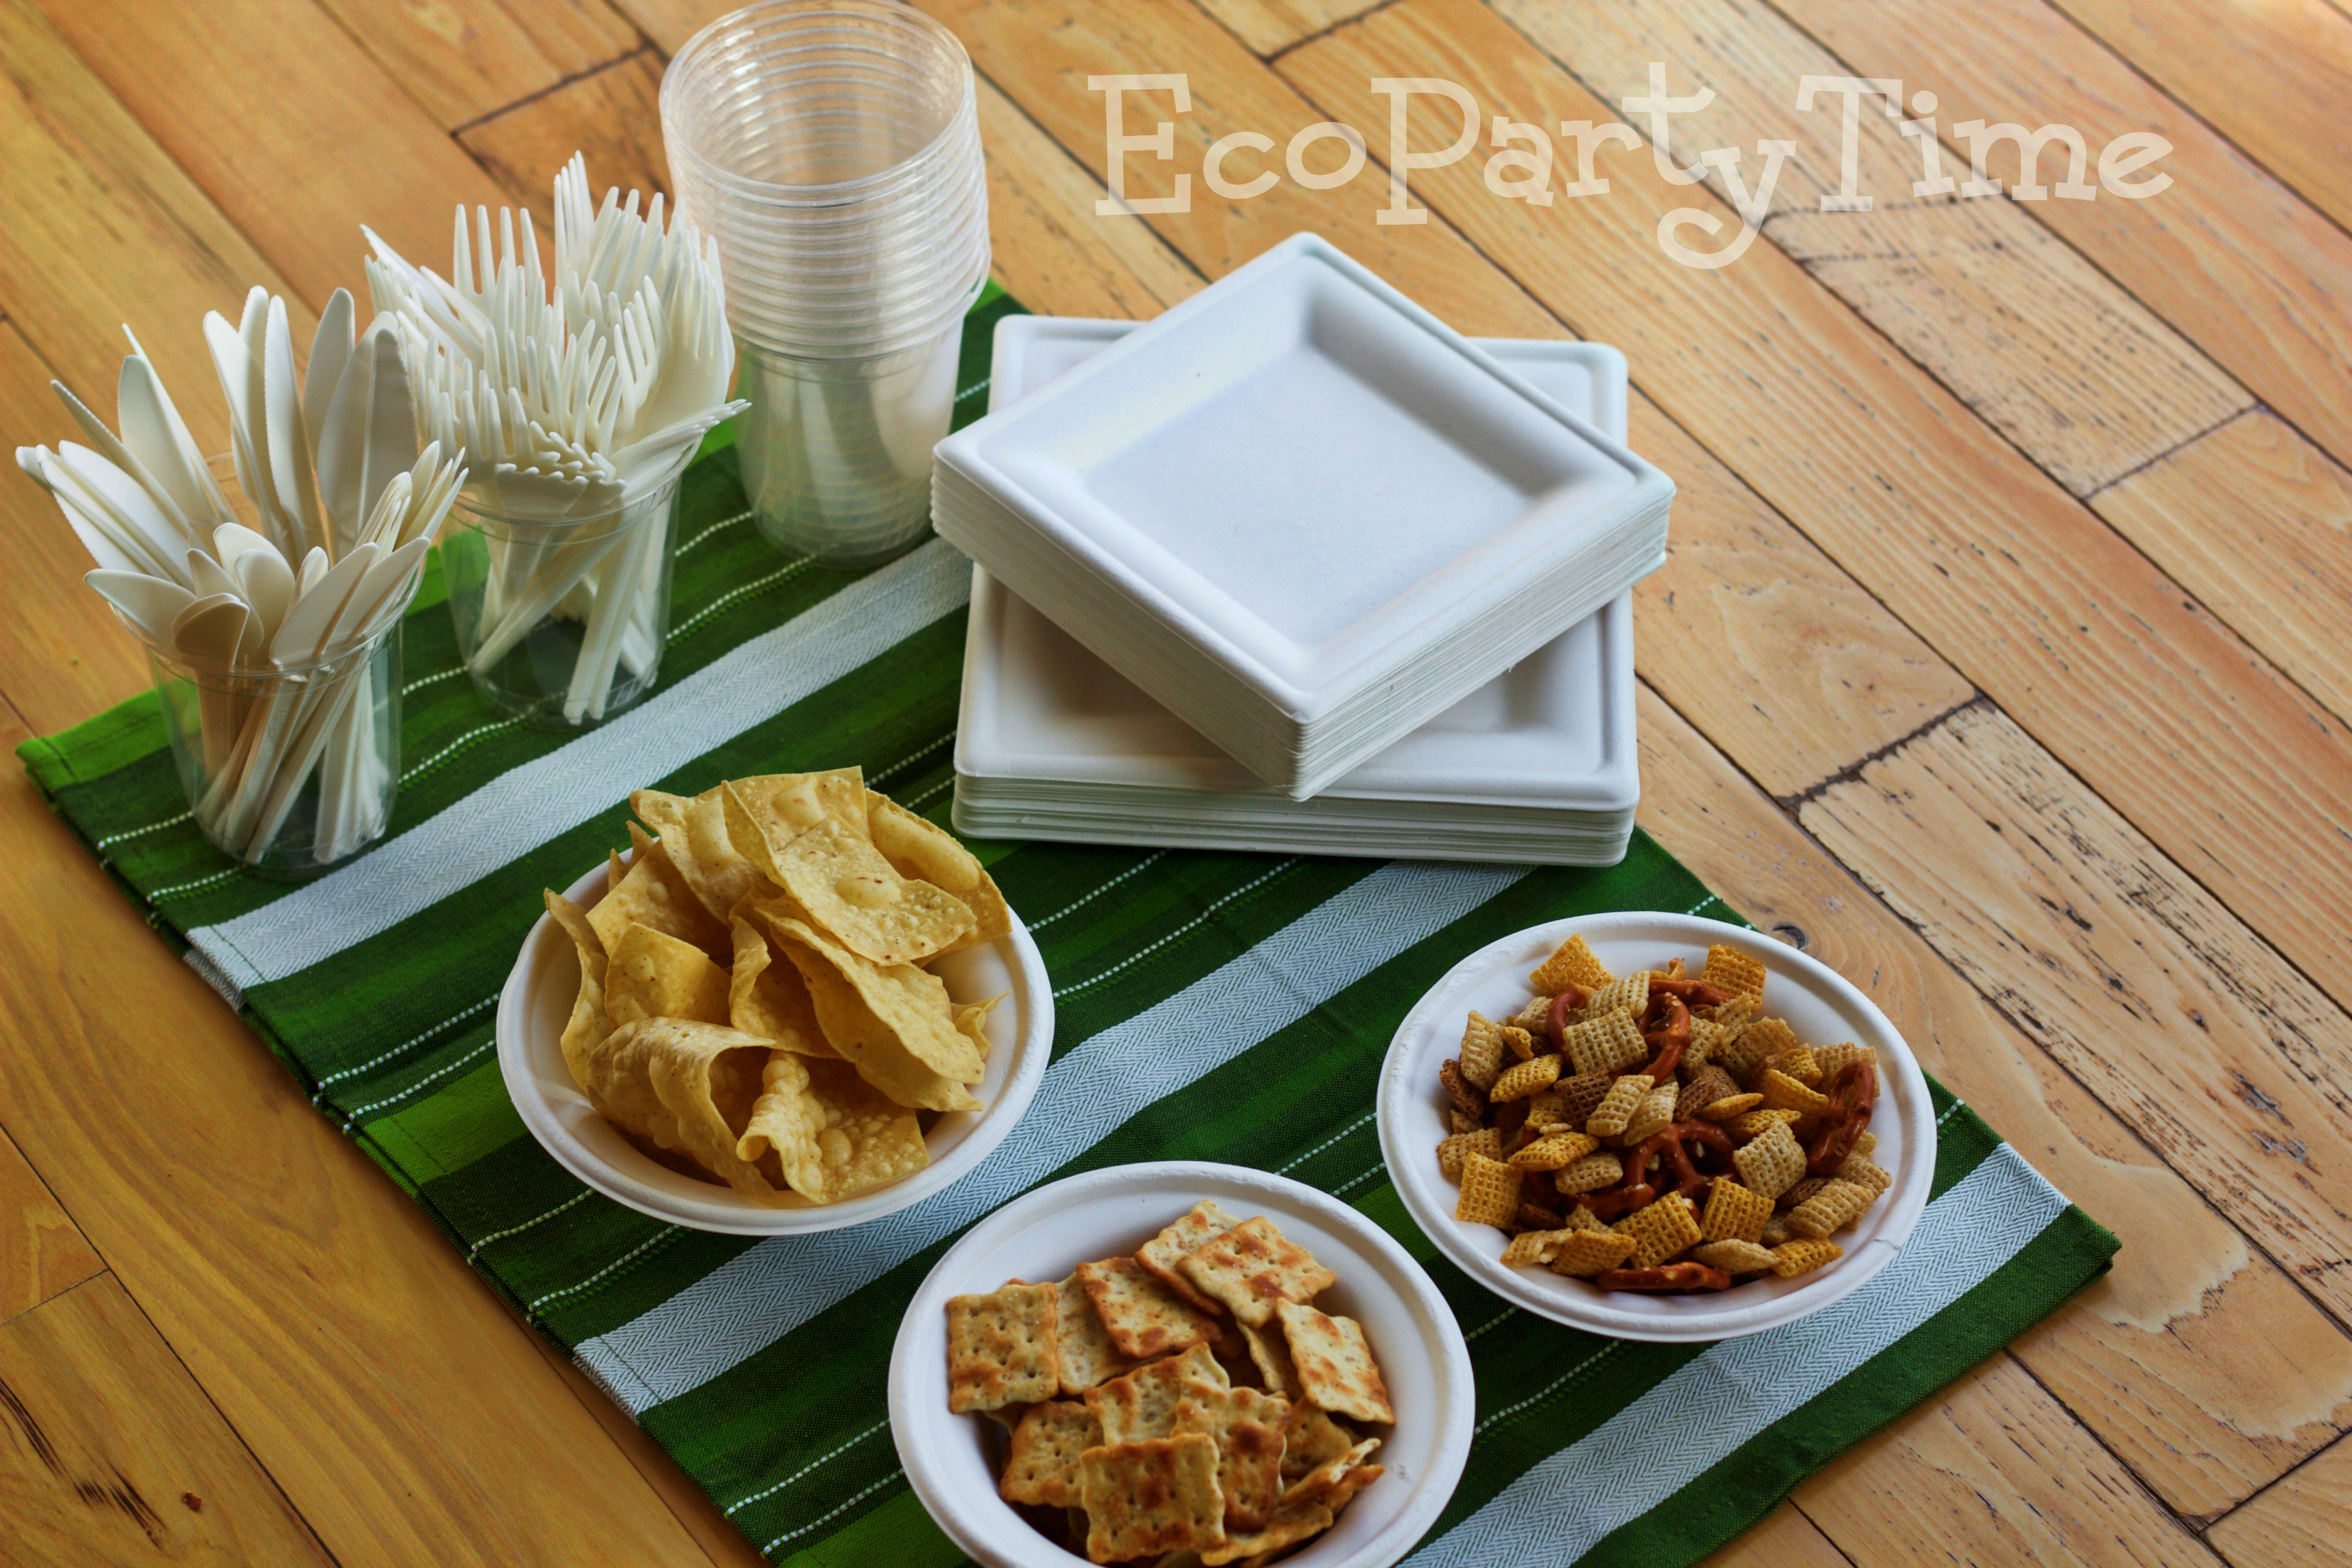 Ecopartytime: Green Your Superbowl Party